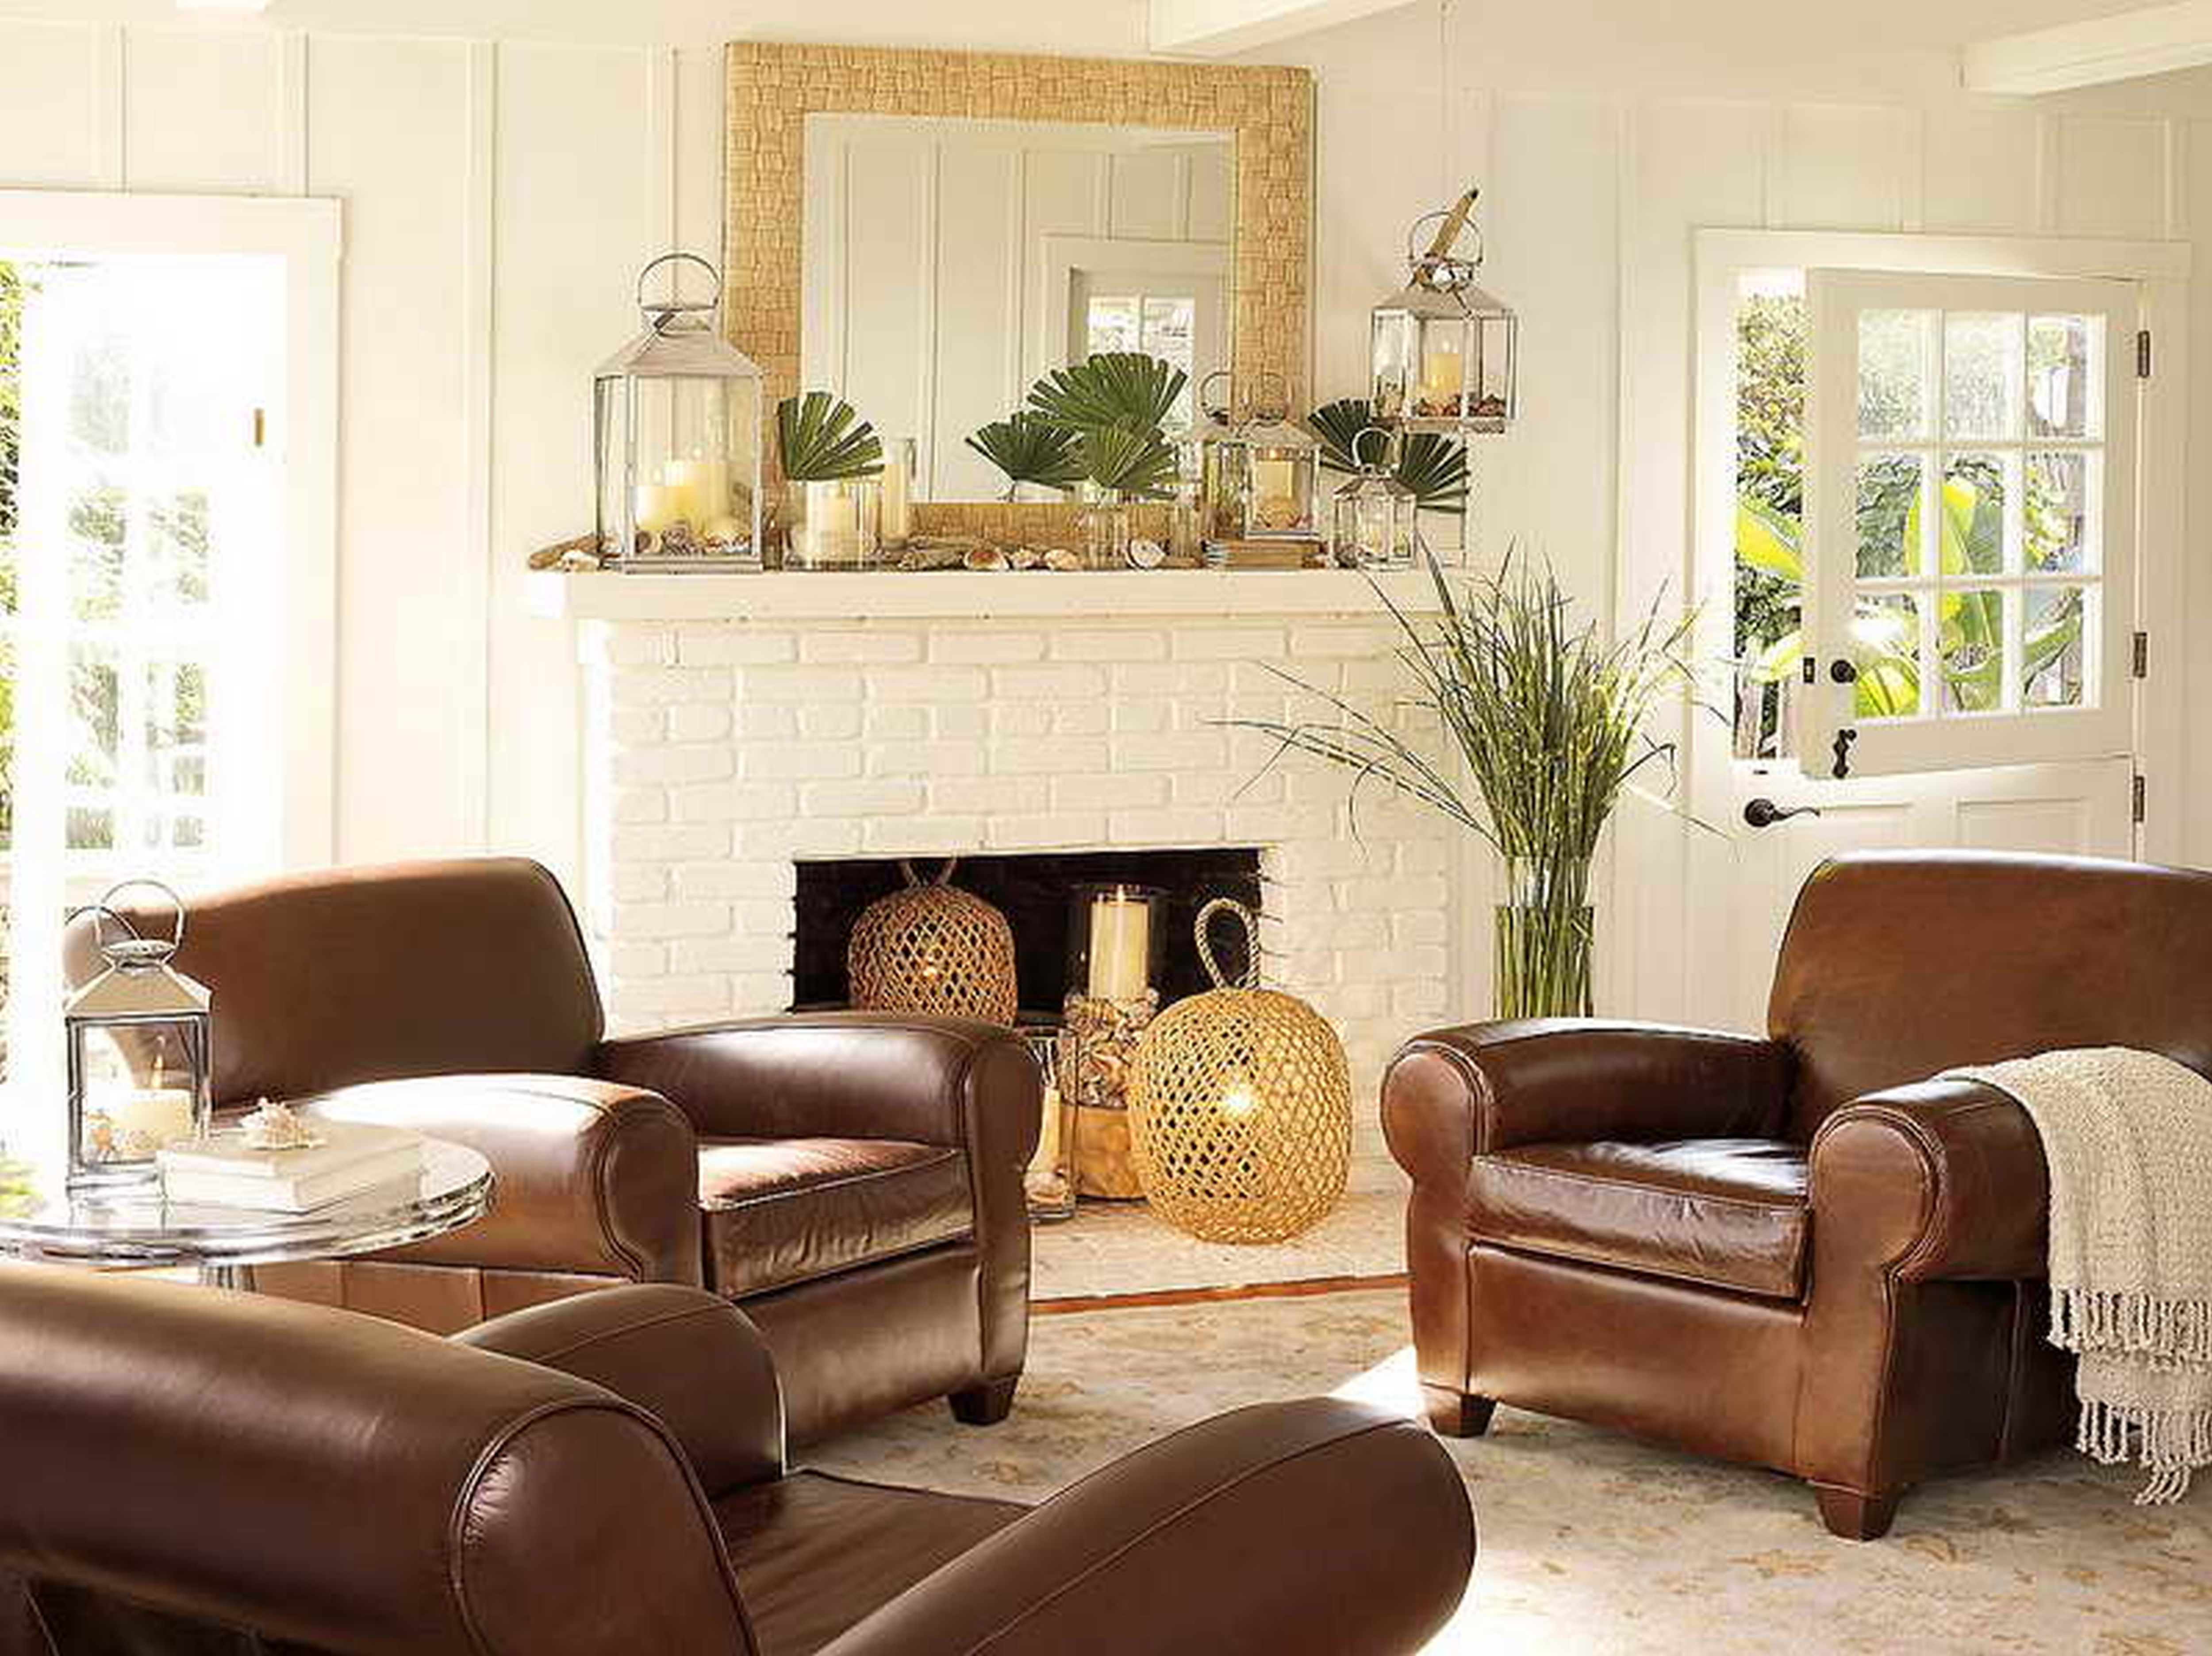 Living Room Decorating Accessories For Living Rooms 1000 images about decorating ideas for livingrooms with dark color furniture on pinterest